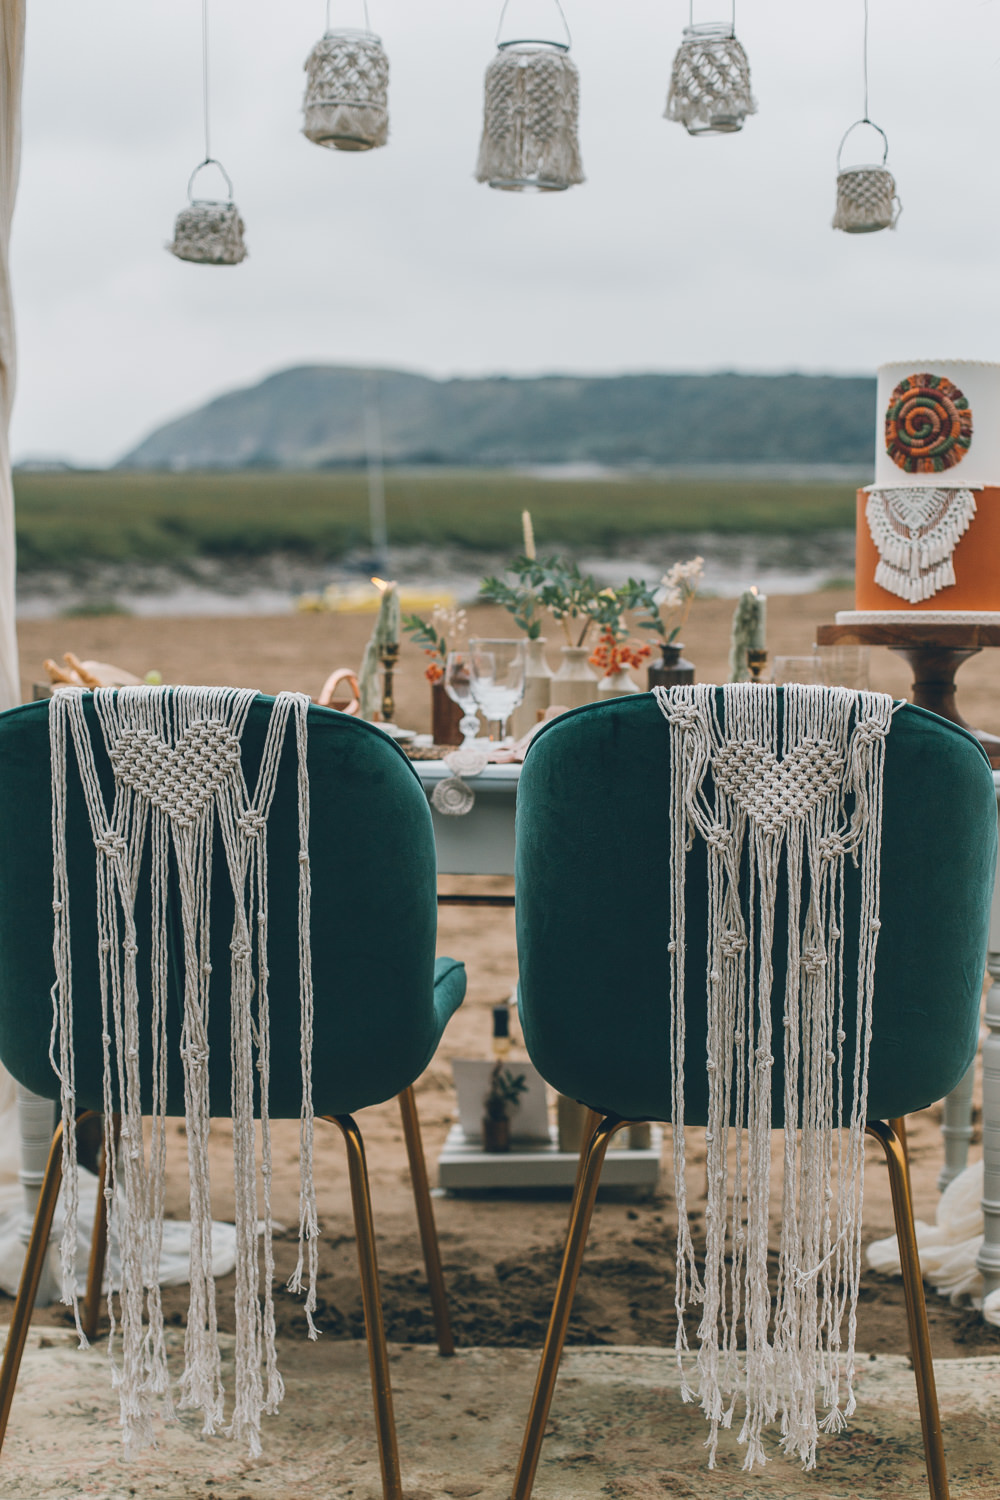 Chairs Macrame Decor Beach Wedding UK Maria Madison Photographer